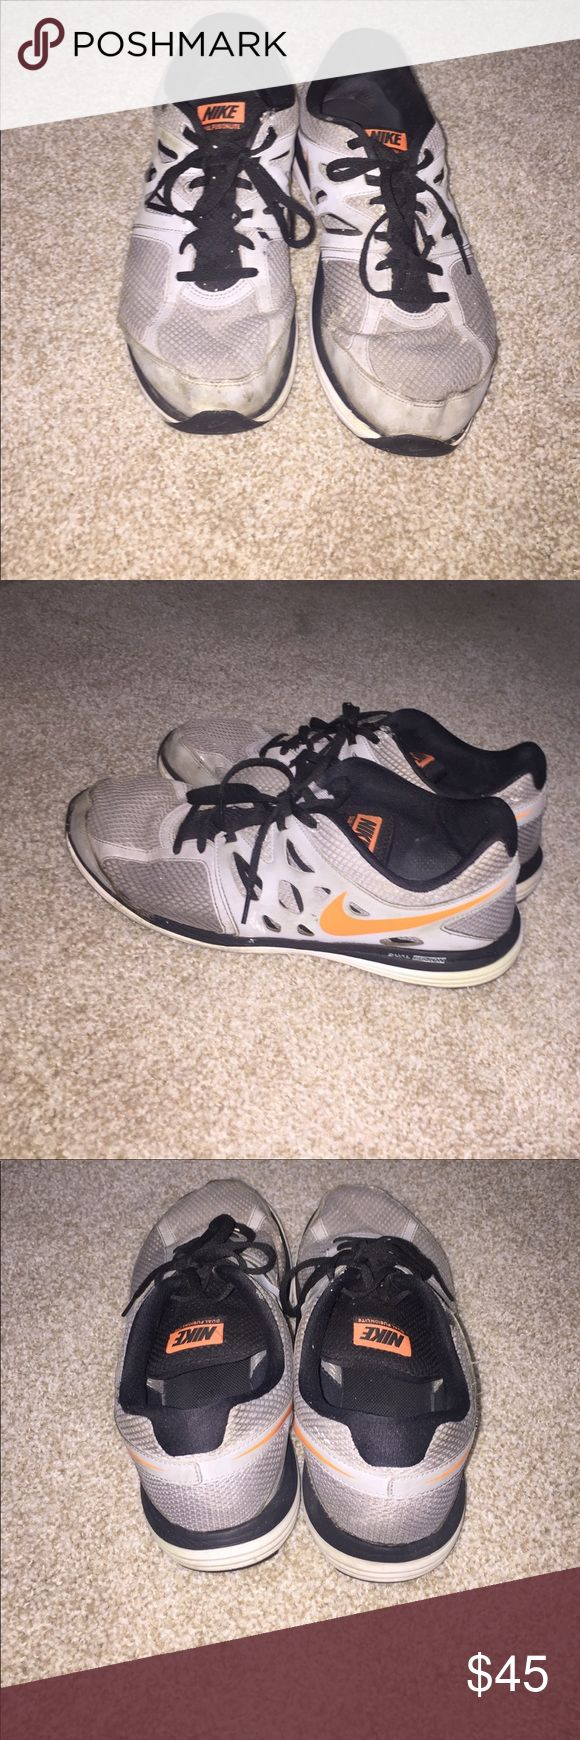 Nike Dual Fusion Lite Gently worn gray and orange Nike shoes with some scuffs and marks on the outside back part. Has mesh lining for easy stretch and breathable material for the summer wear. Still in great condition! Nike Shoes Sneakers